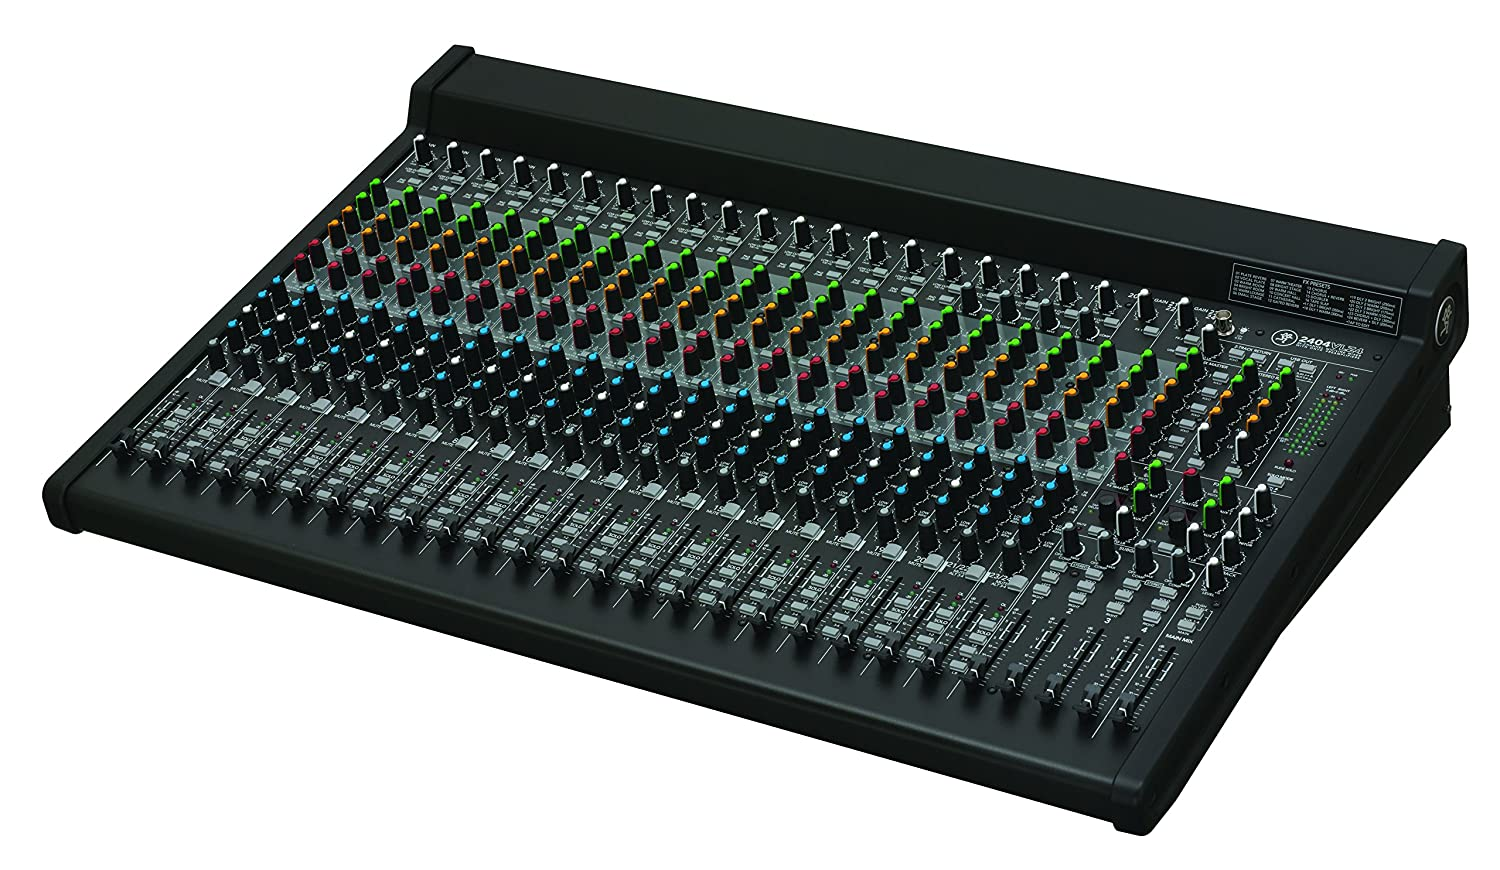 Amazon.com: Mackie VLZ4 Series 2404VLZ4 24-Channel 4-Bus FX Mixer with USB:  Musical Instruments